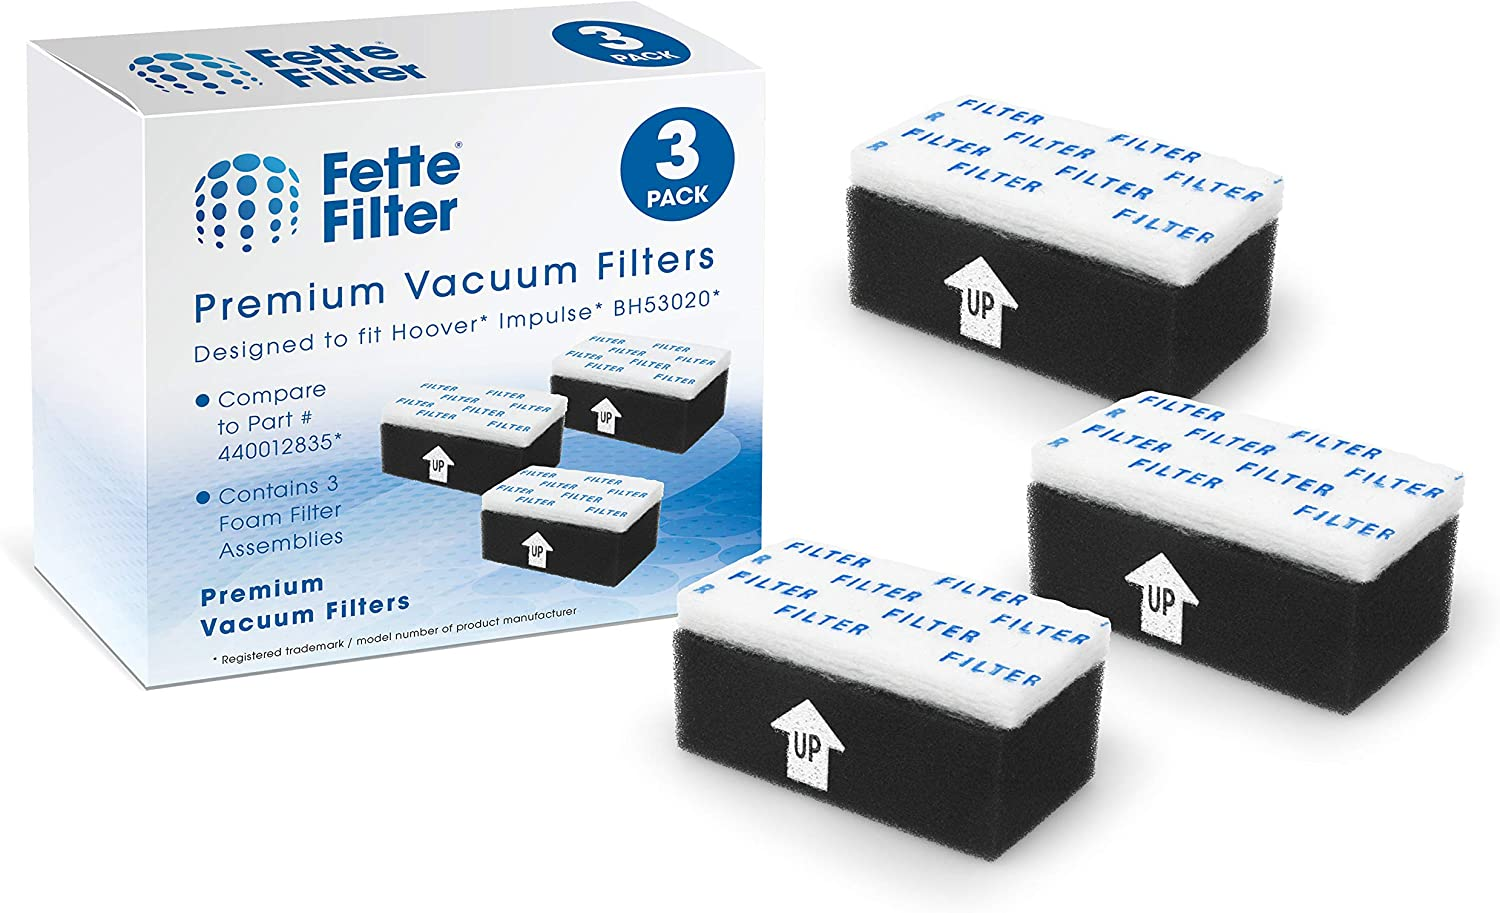 Fette Filter - Vacuum Foam Filter Assembly Compatible with Hoover Impulse Cordless Vacuum BH53020. Compare to Part # 440012835. 3 Pack